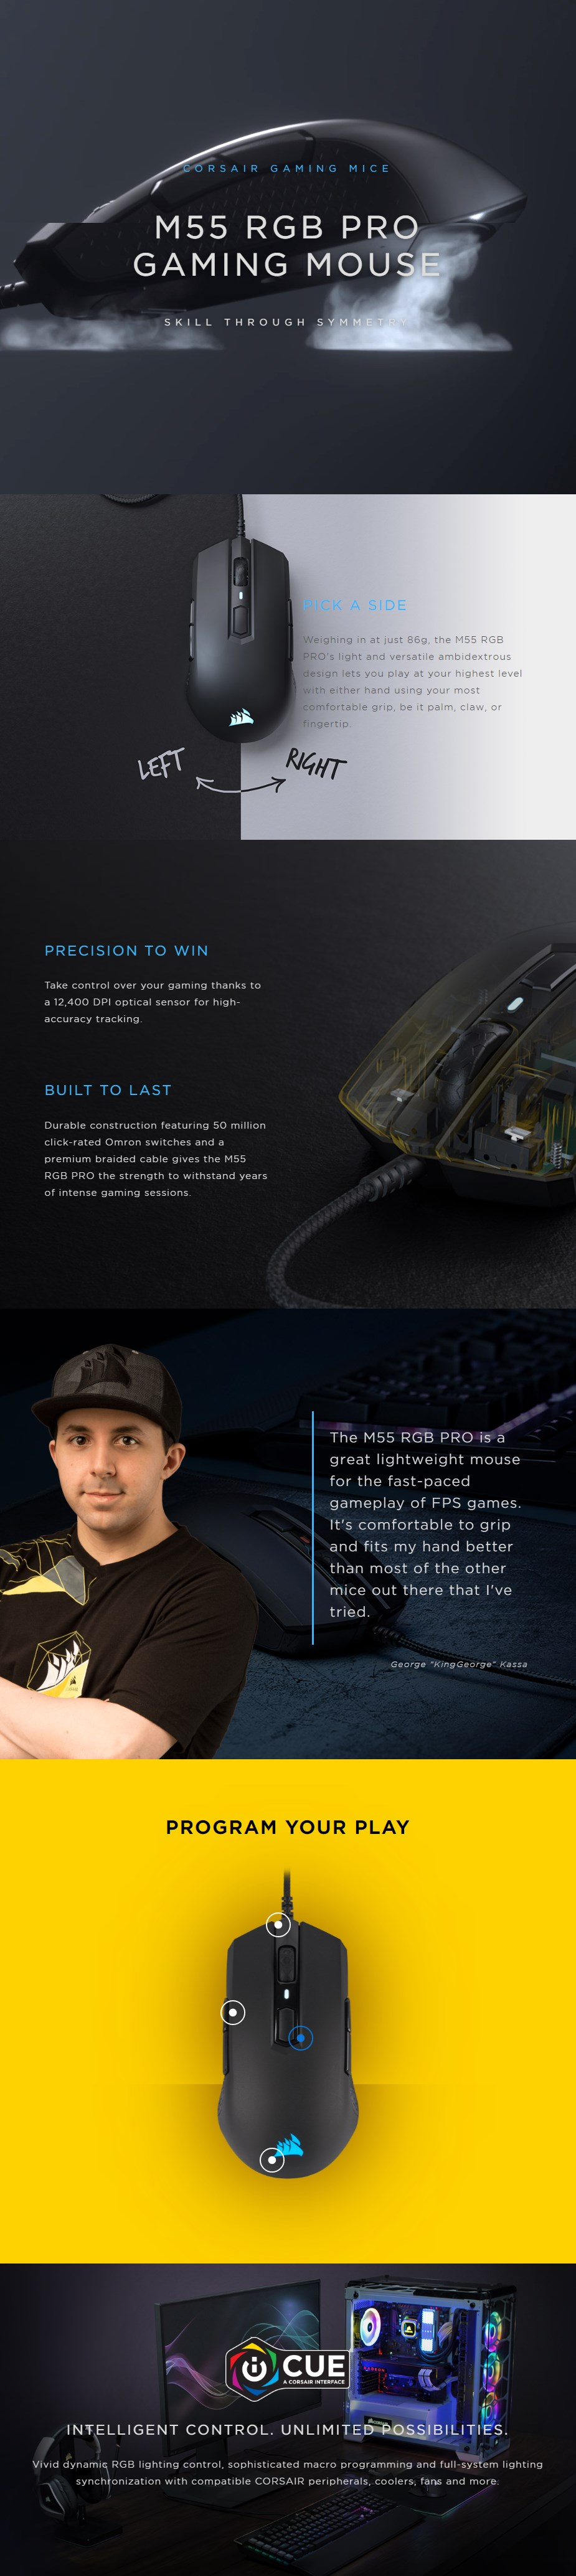 Corsair M55 RGB PRO Optical Gaming Mouse - Overview 1